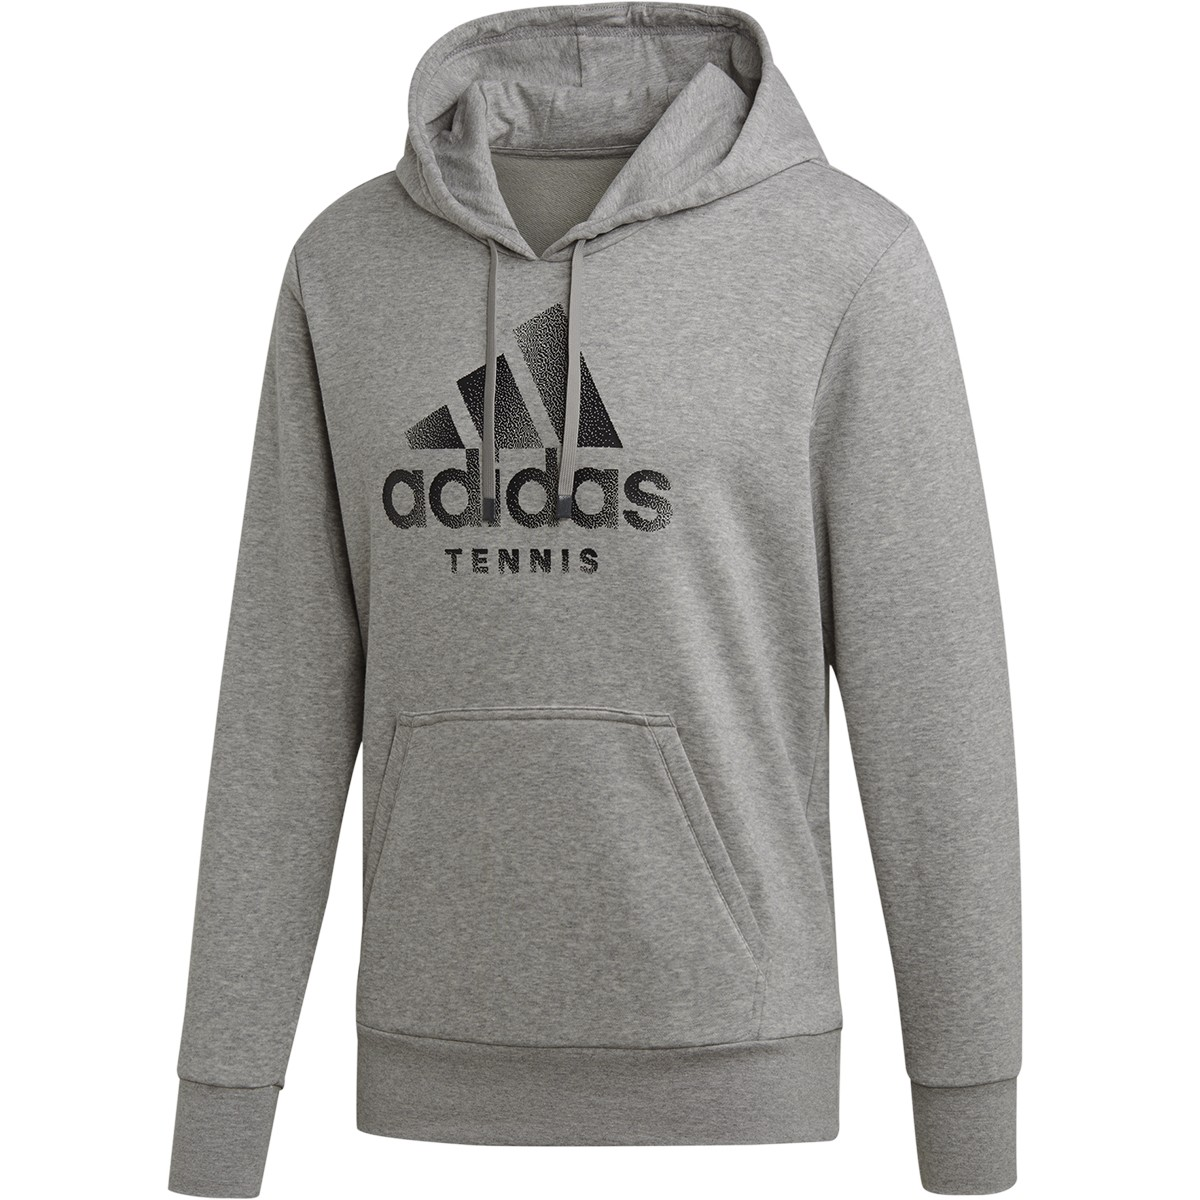 SWEAT ADIDAS CATEGORY TENNIS ADIDAS Homme Vêtements